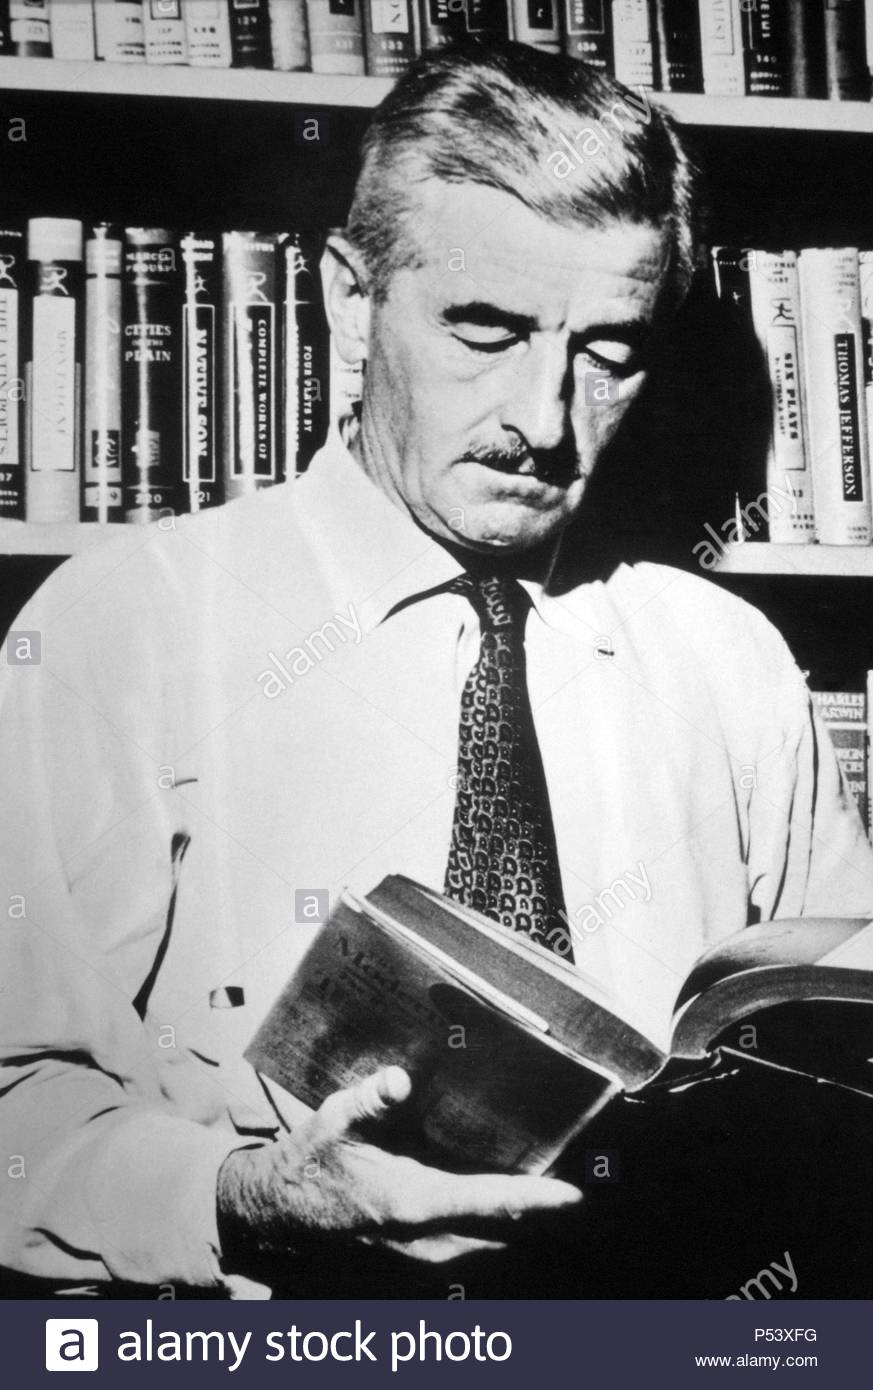 william-faulkner-1897-1962-escritor-y-poeta-estadounidense-P53XFG